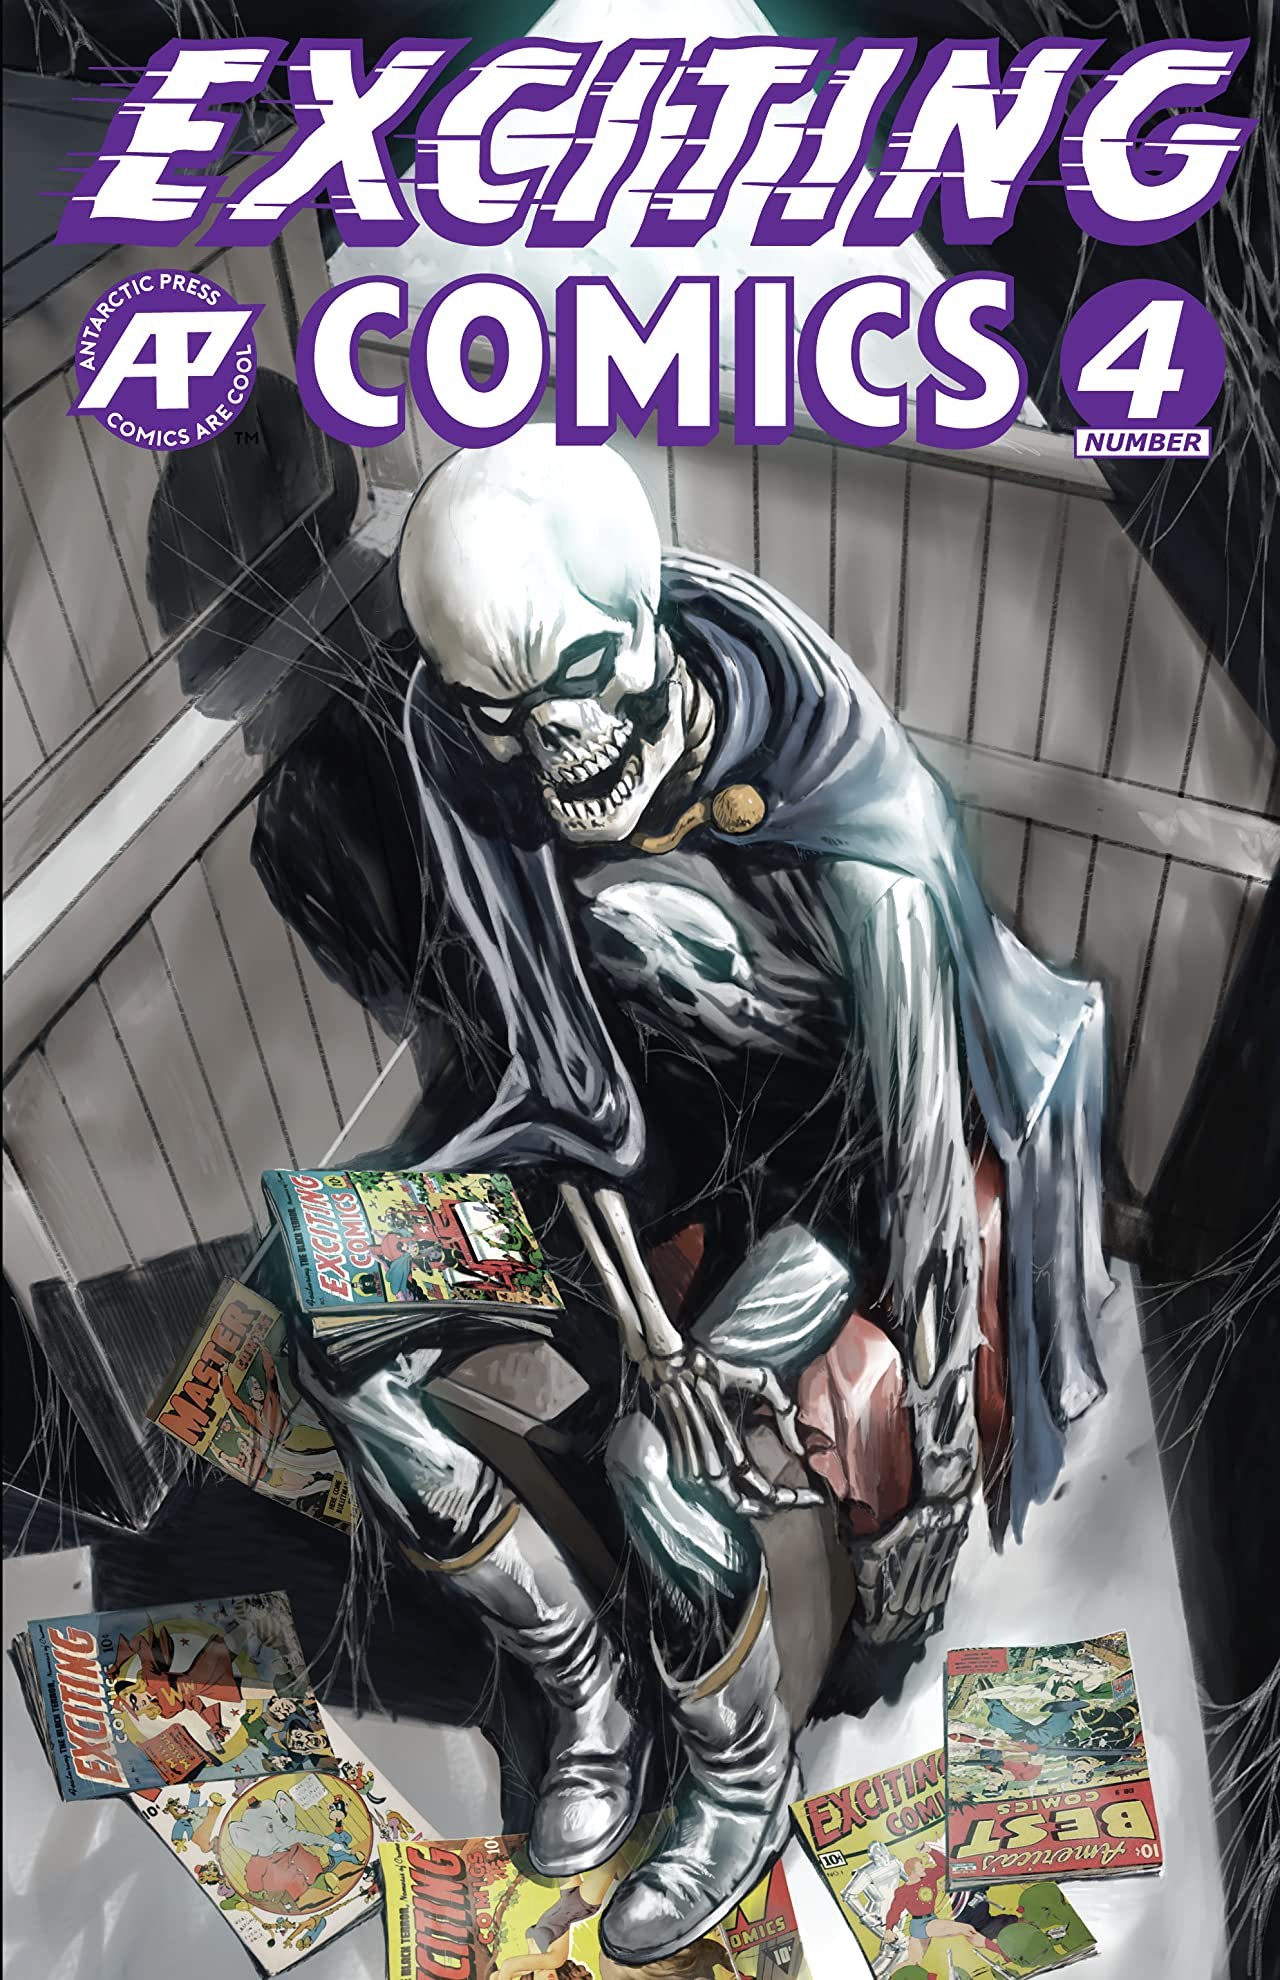 Exciting Comics #4